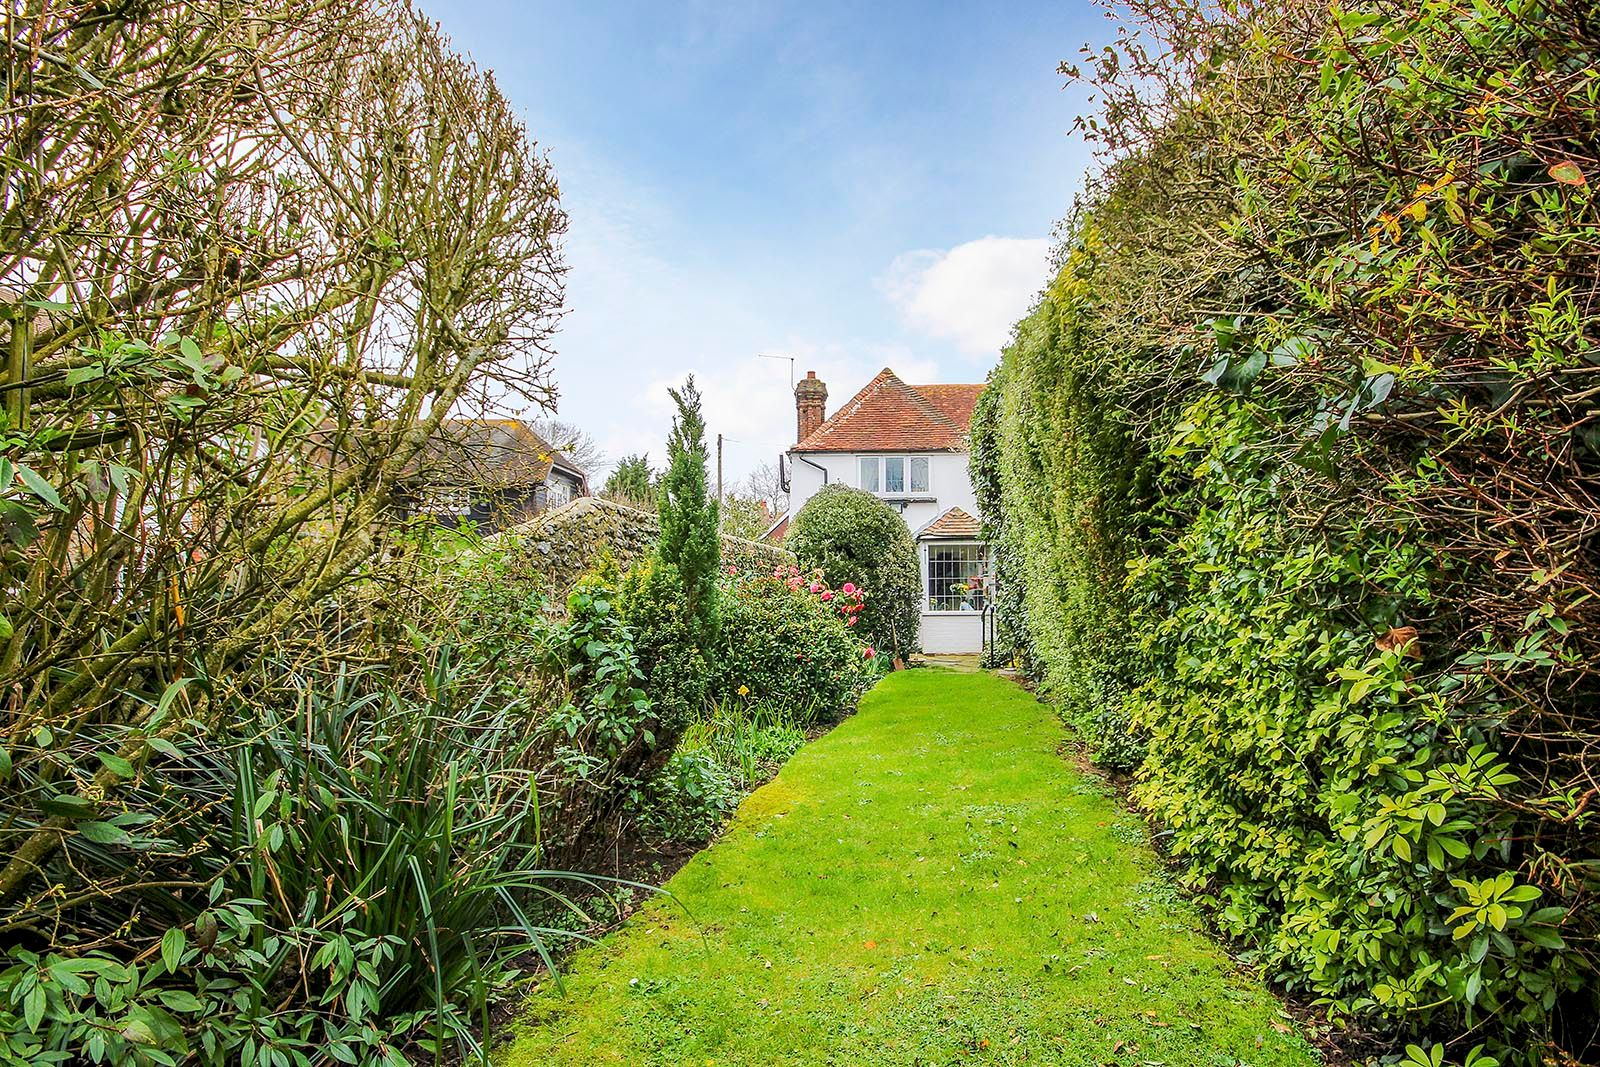 2 bed House for sale in Arundel - Garden (Property Image 21)